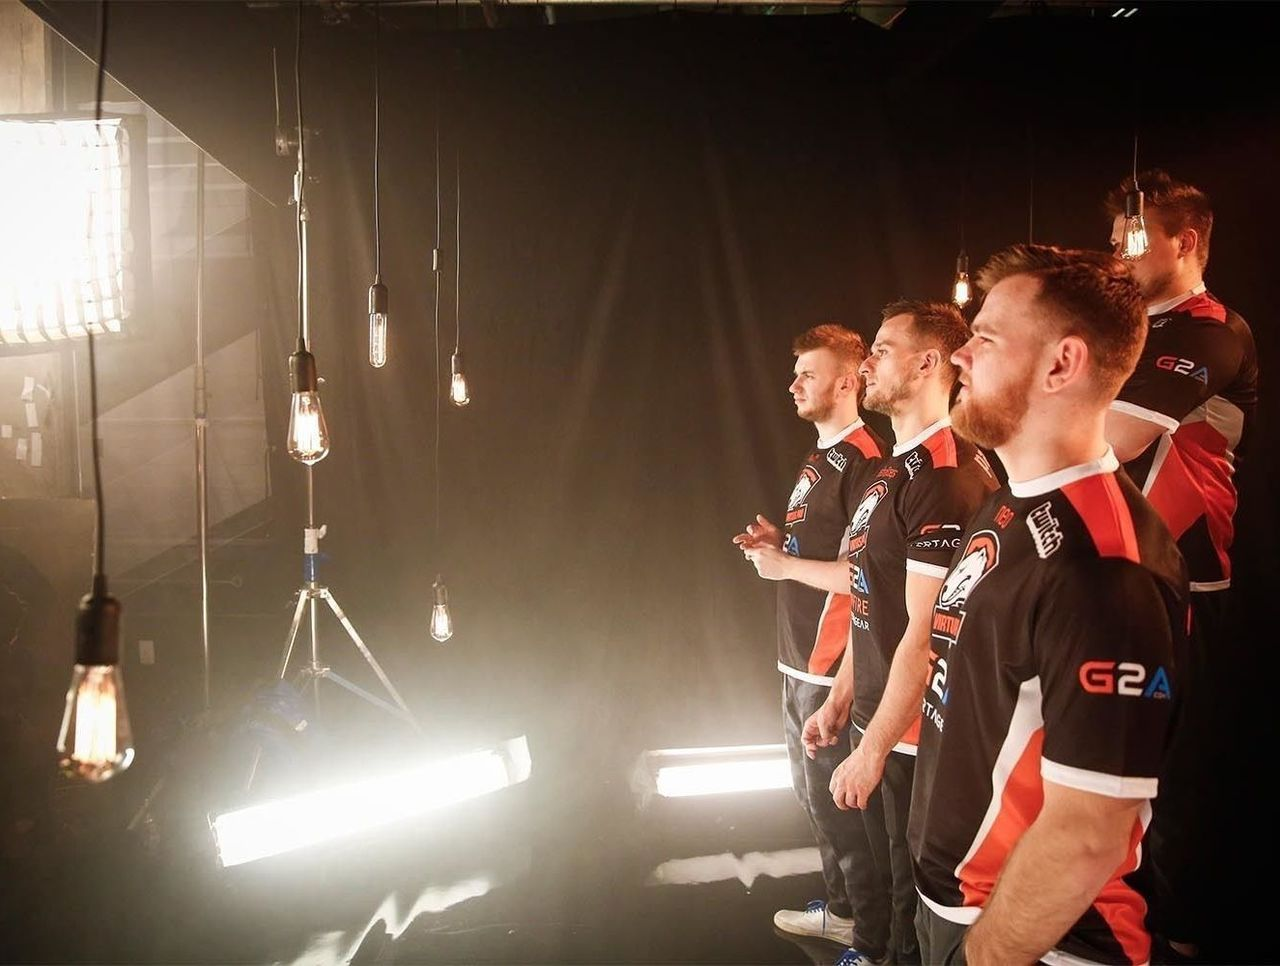 Virtus pro pulls out of CS:GO until further notice, NA LCS